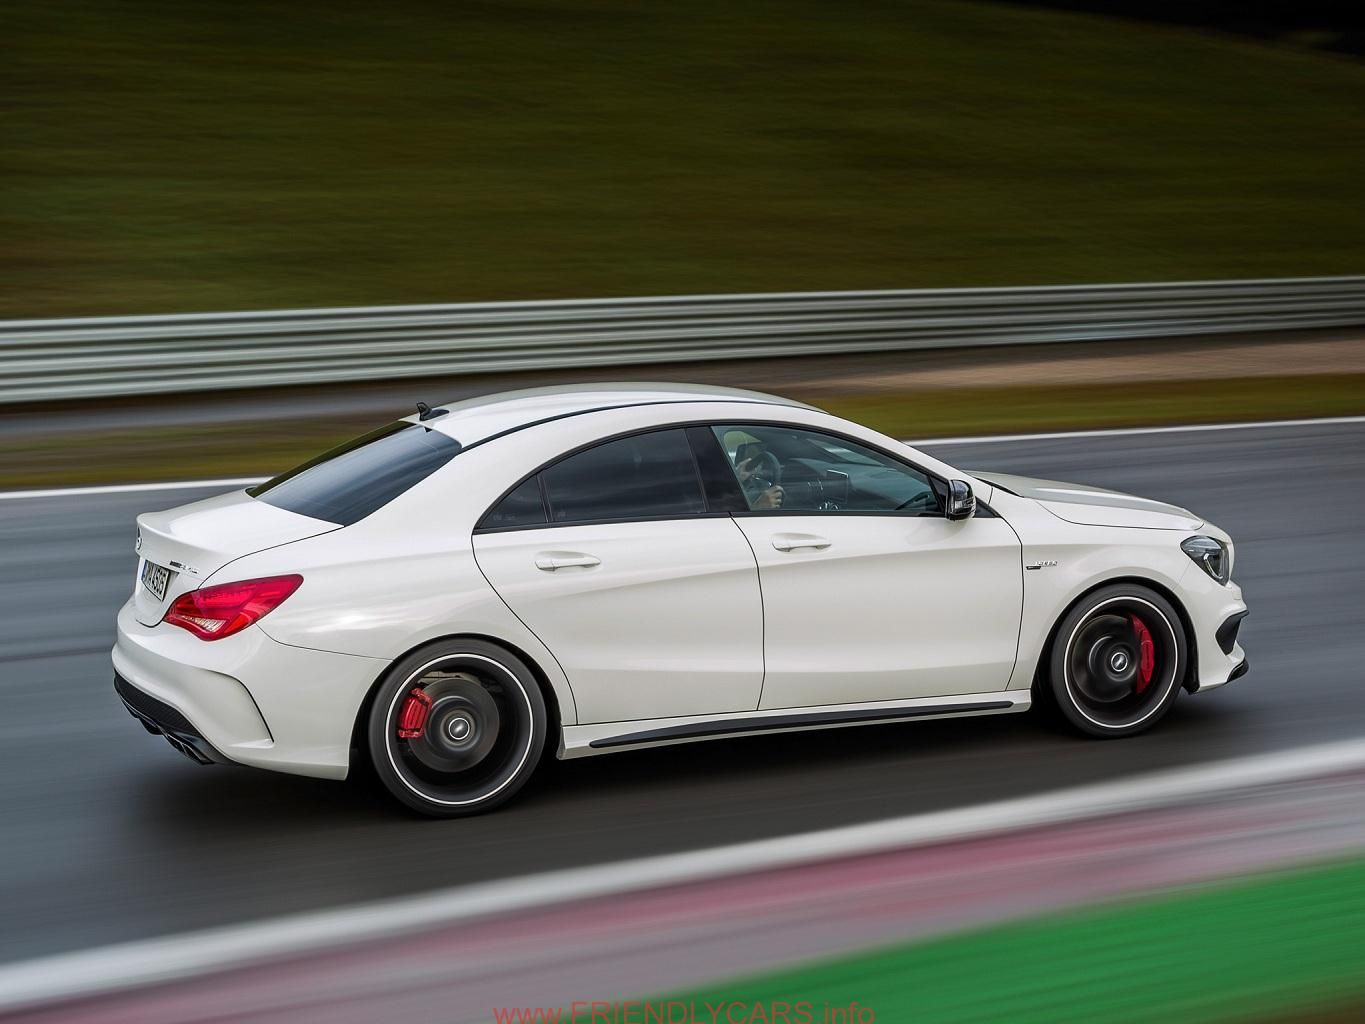 Cool Mercedes Benz Cla 250 White Car Images Hd Anyone Have Cla250